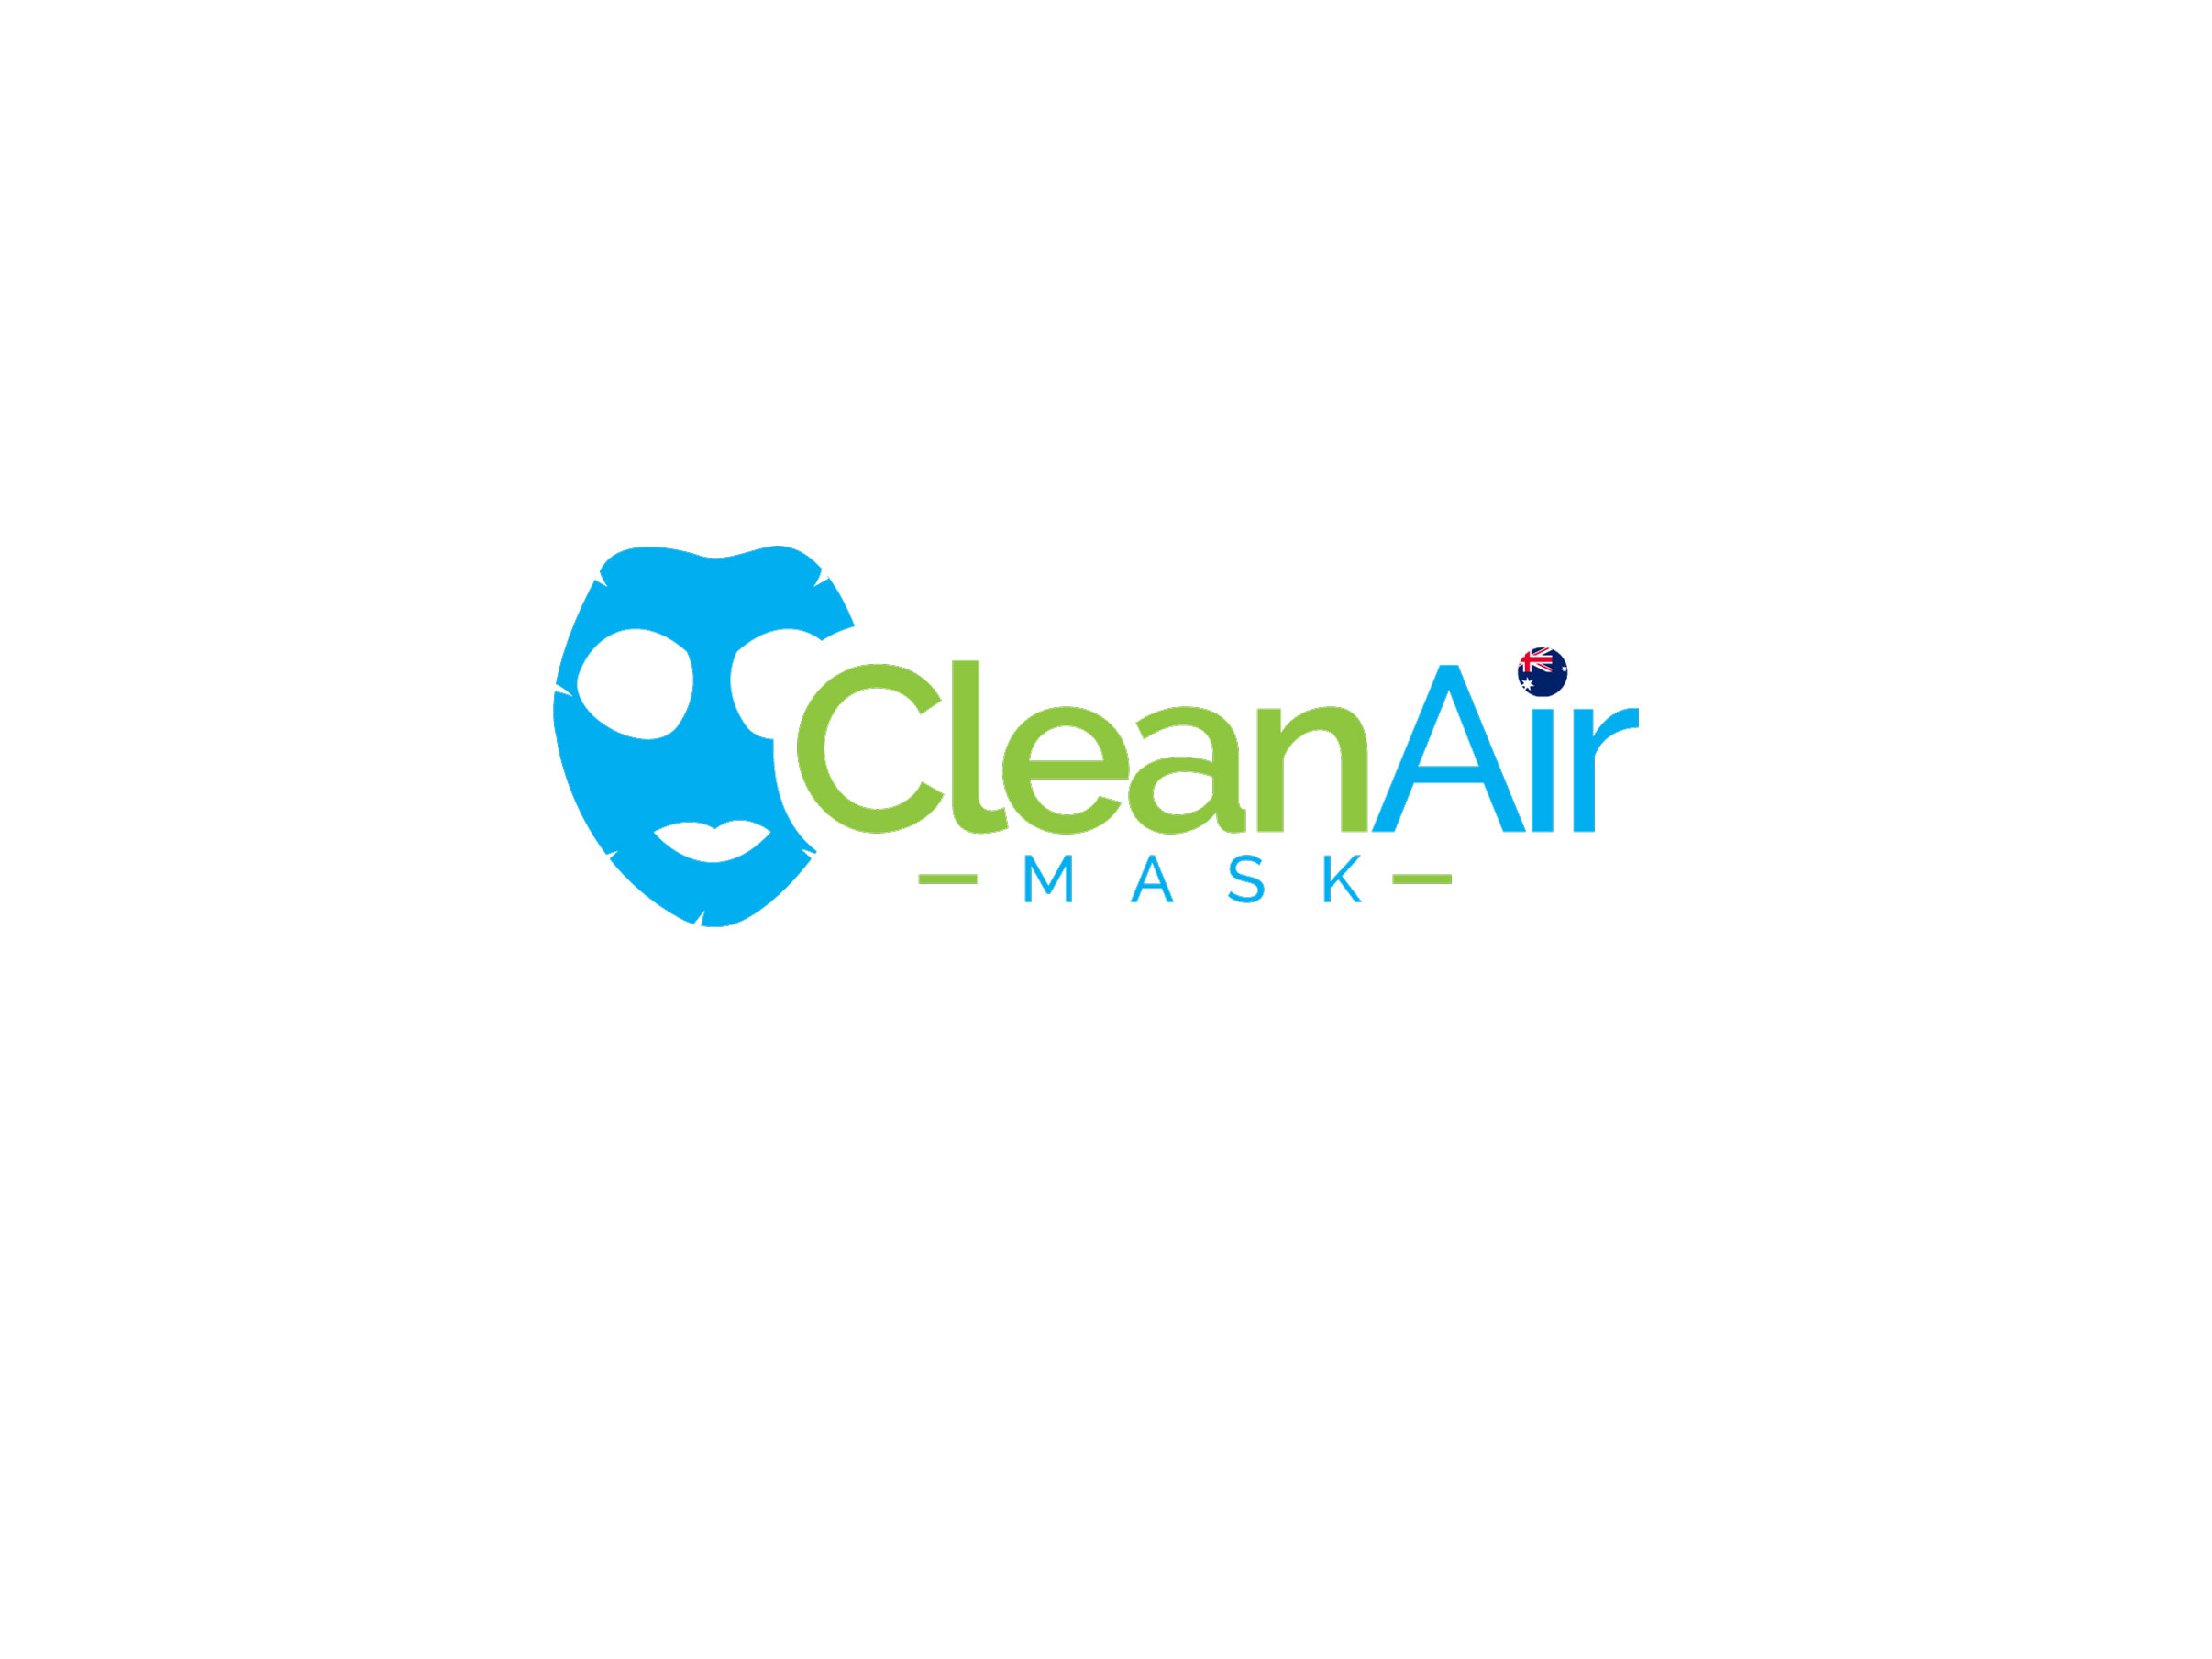 clean air mask white background